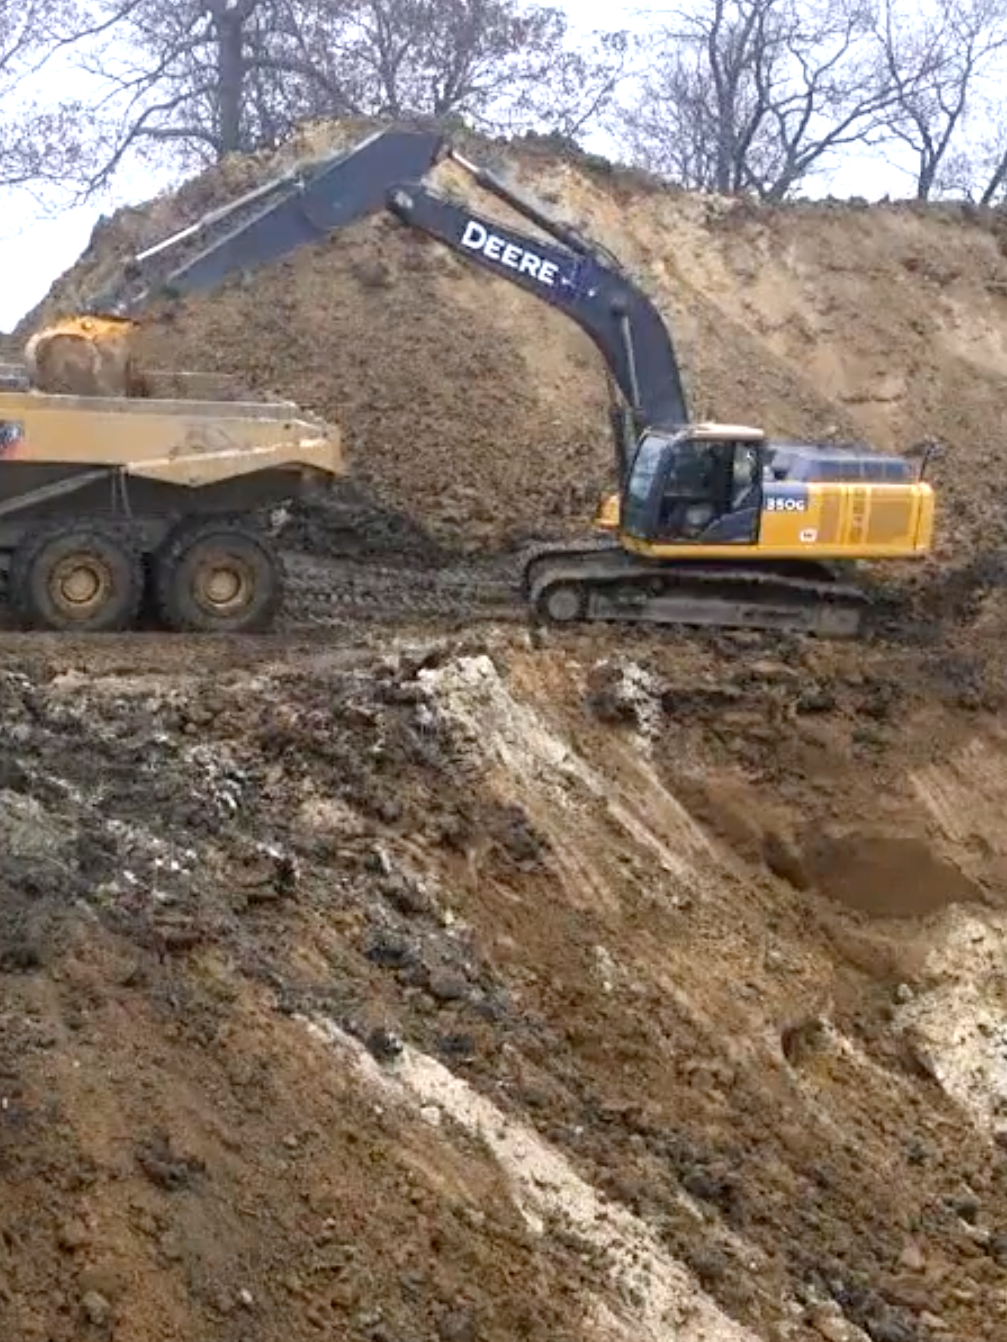 Cards Against Humanity is digging a giant hole because they can.